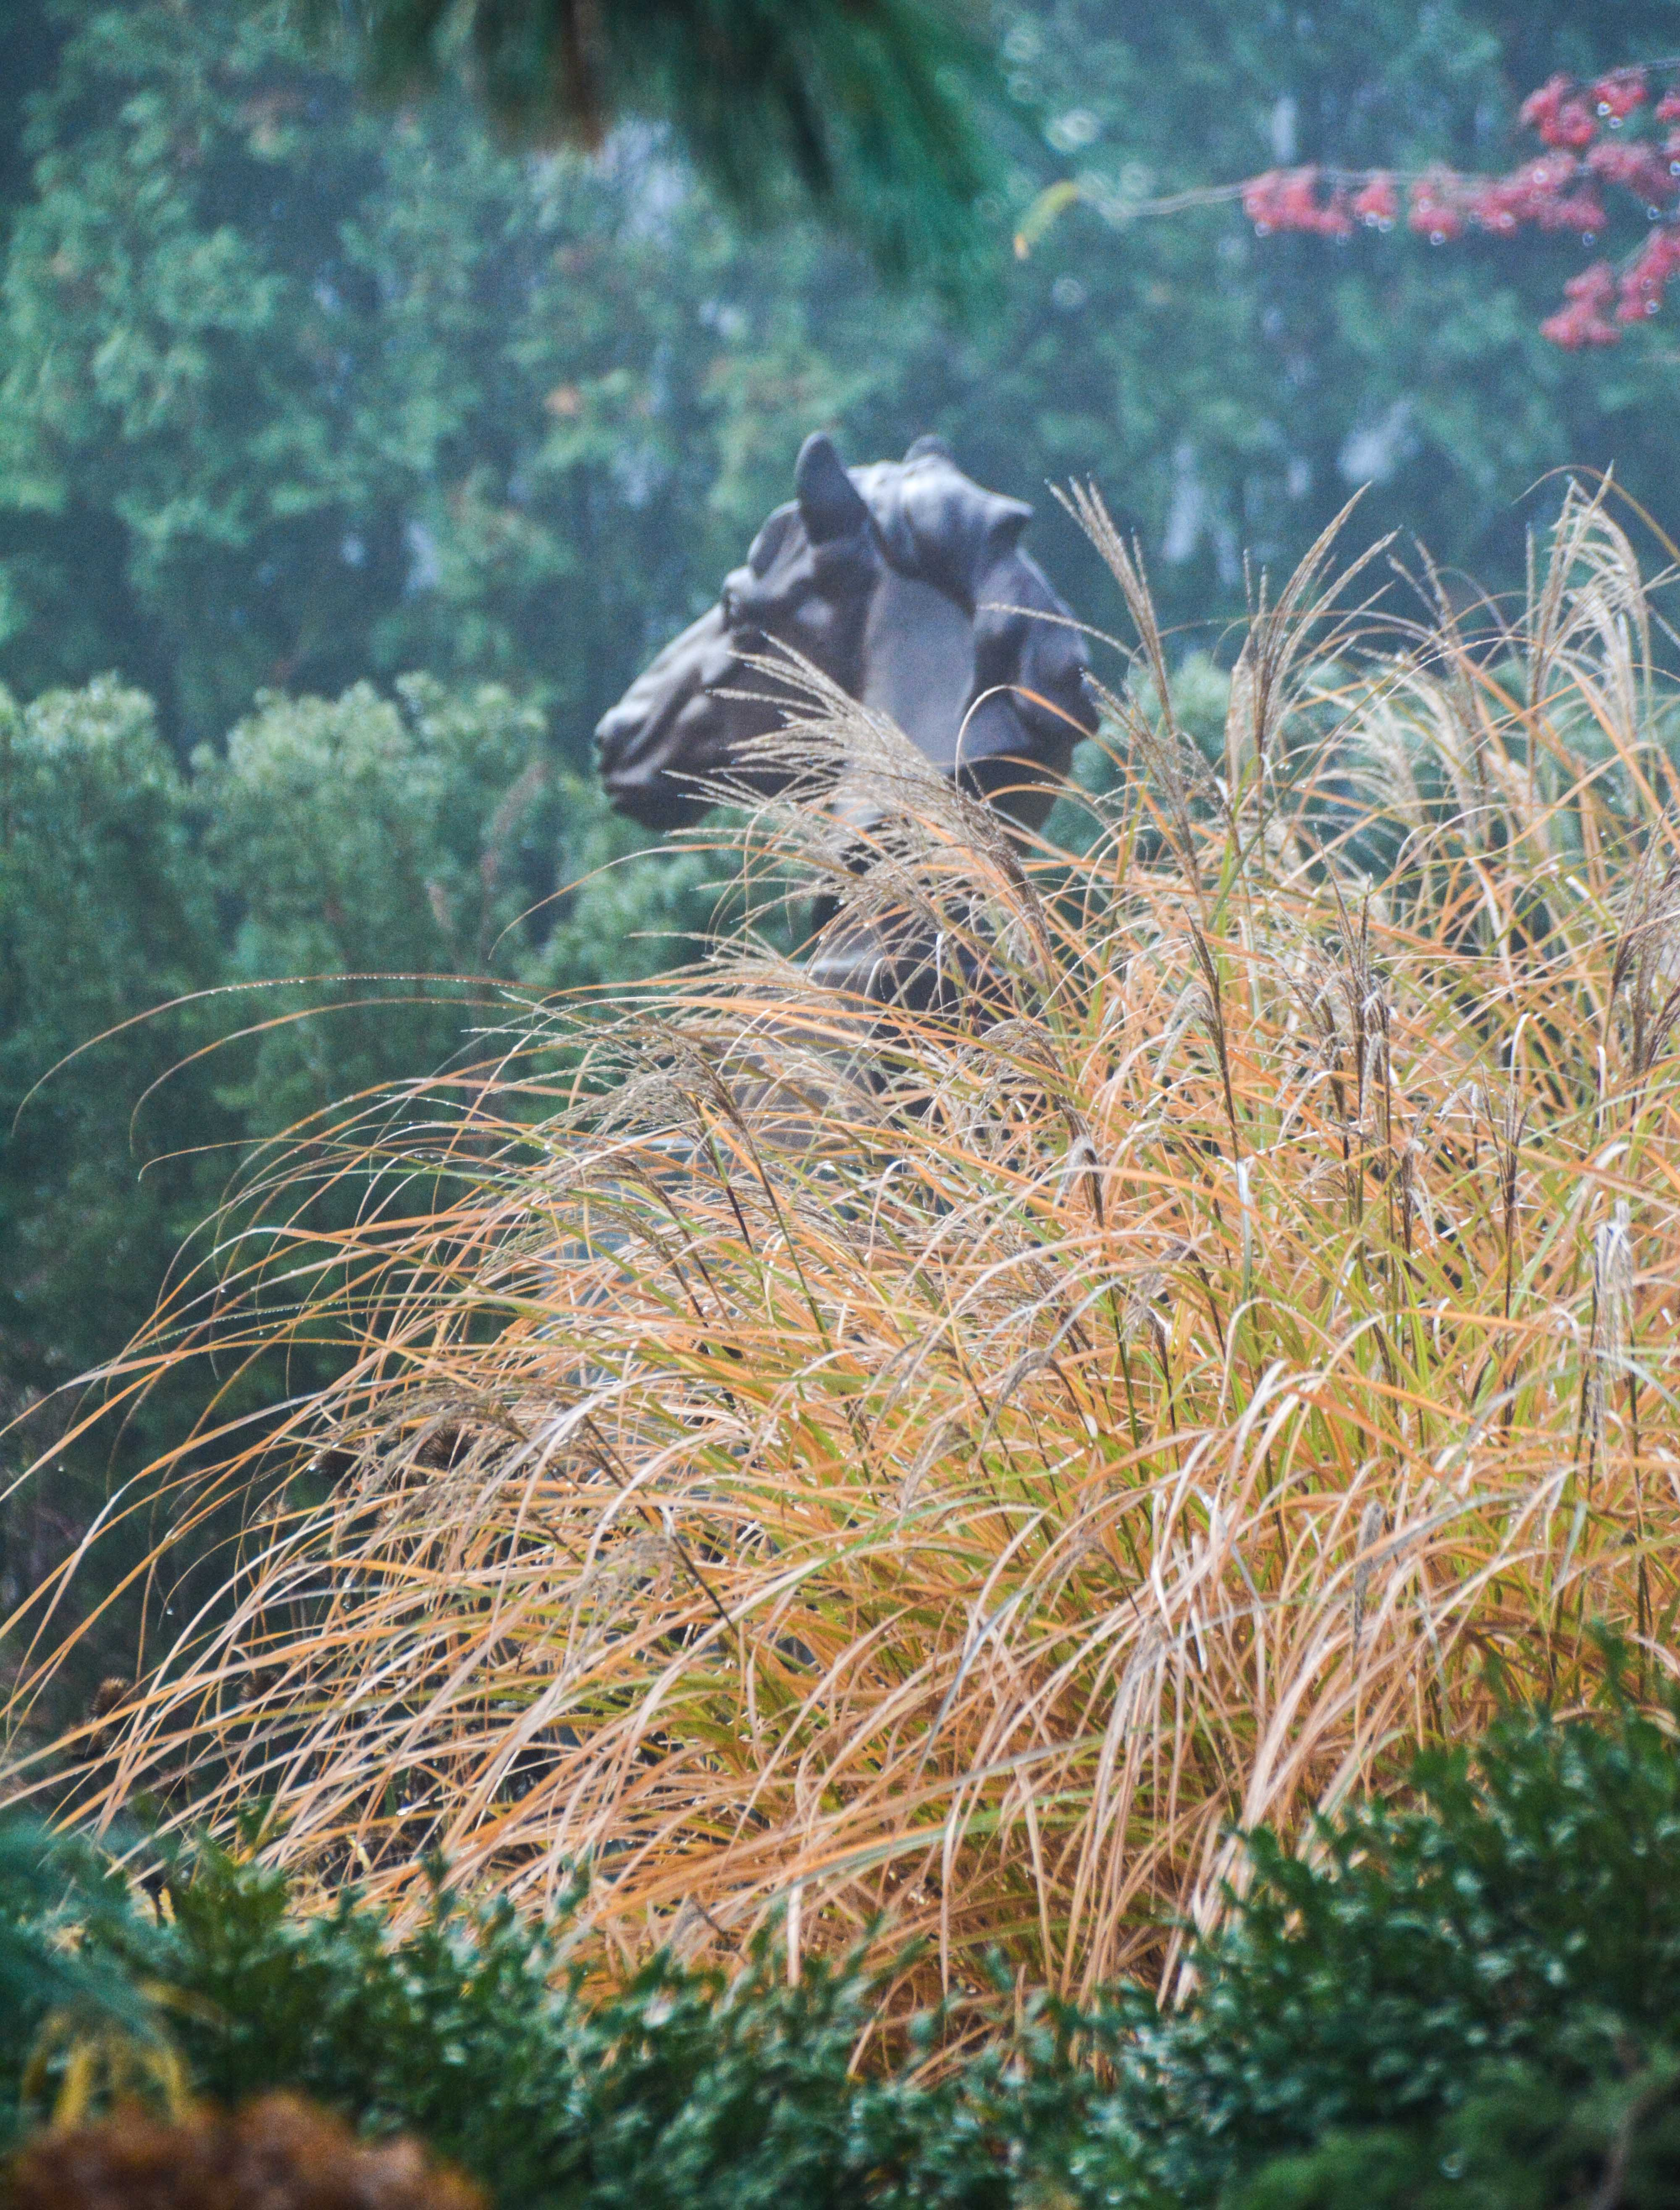 Miscanthus sinensis 'Gracillimus'- eulalia grass, Beauty in Decay, Thinking Outside the Boxwood